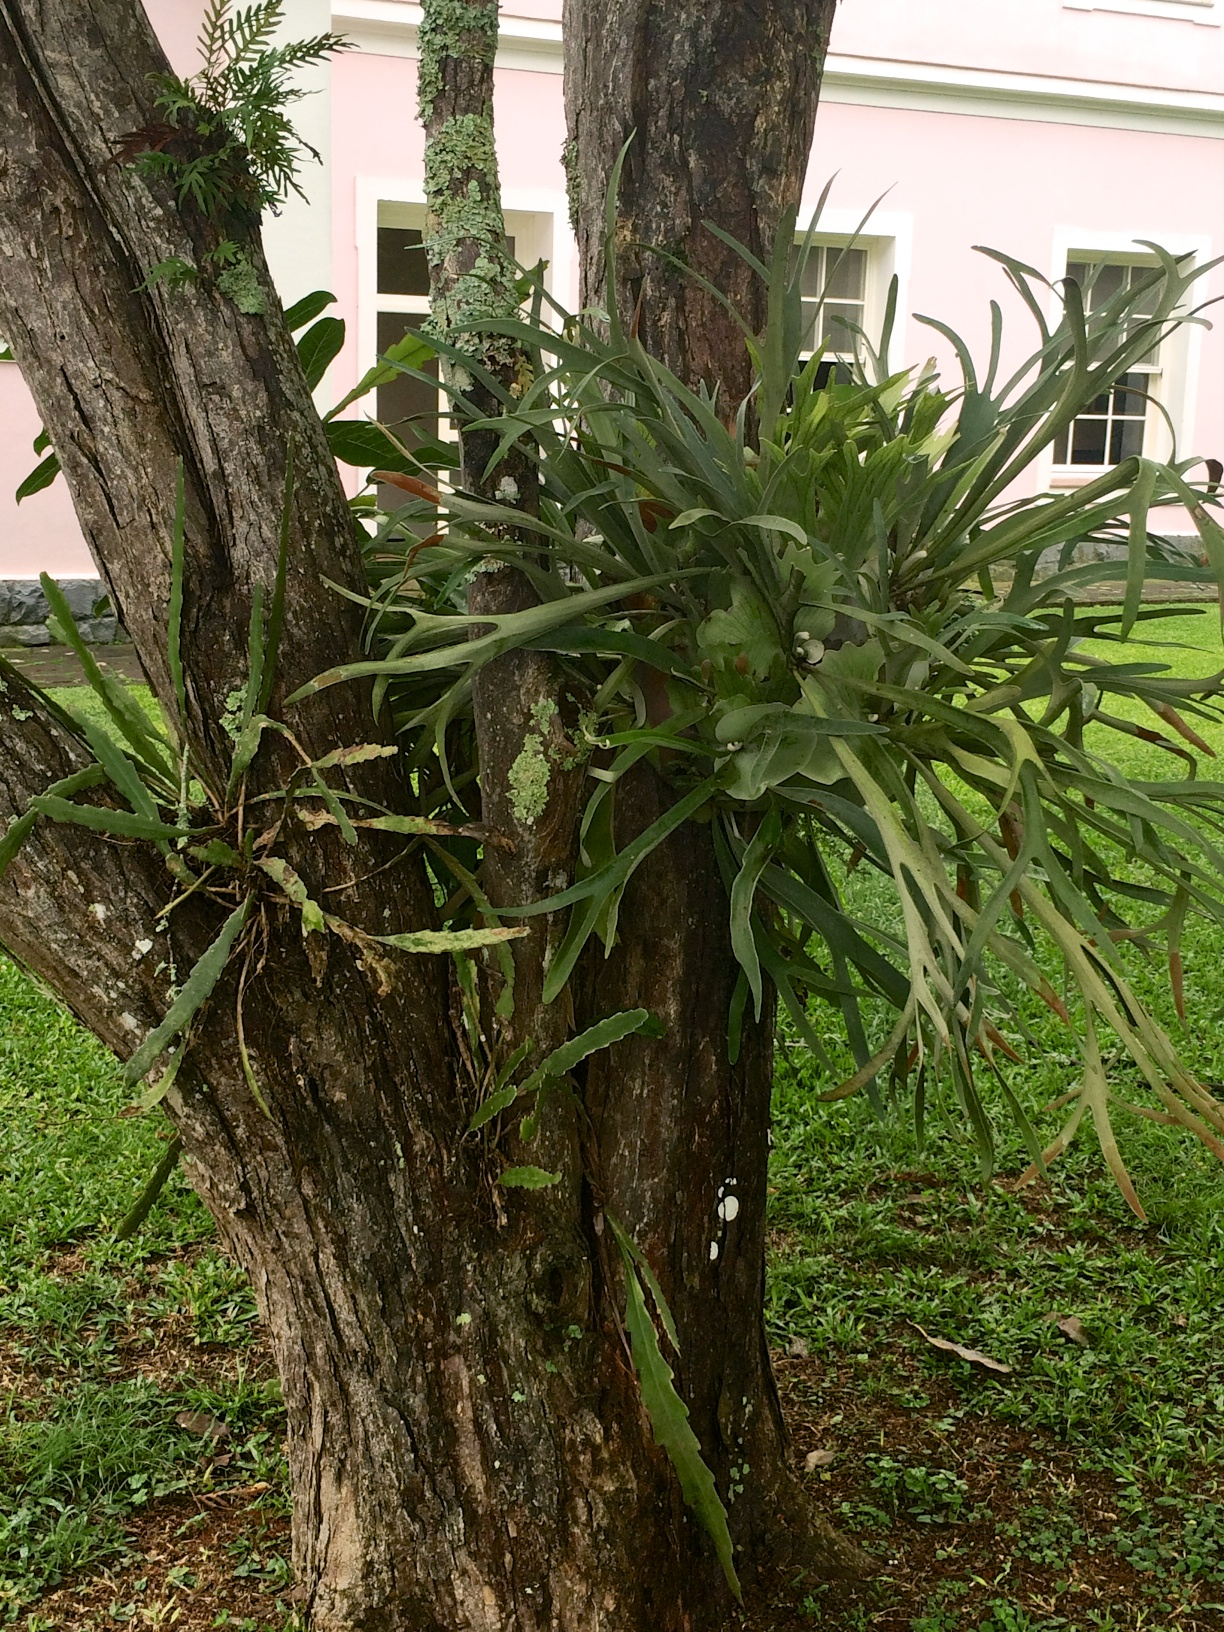 Hotel das Cataratas, Foz do Iguacu, Brazil: tree trunk adorned with a large Staghorn Fern, various other ferns, epiphyllum and lichens